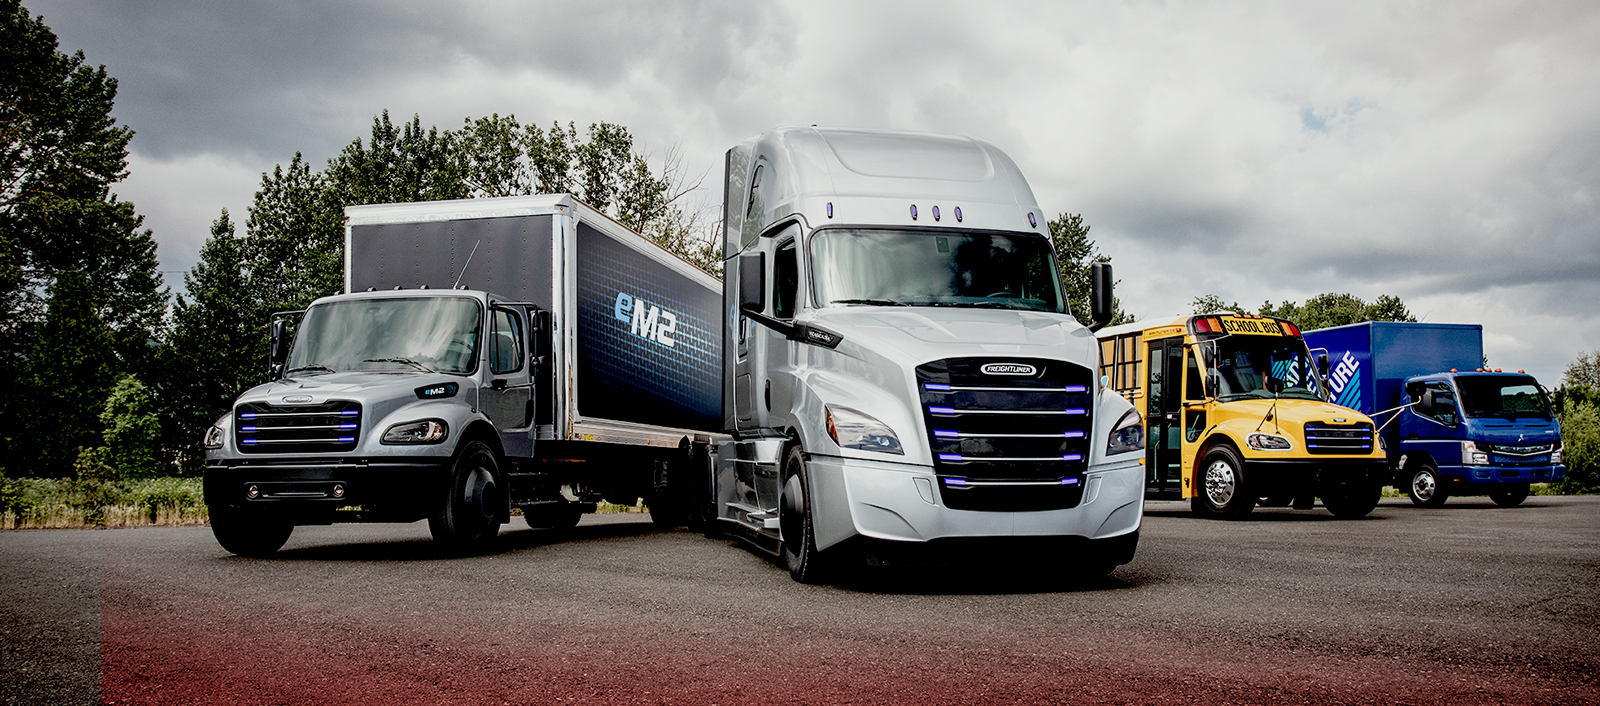 Commercial Truck Dealers - Velocity Vehicle Group